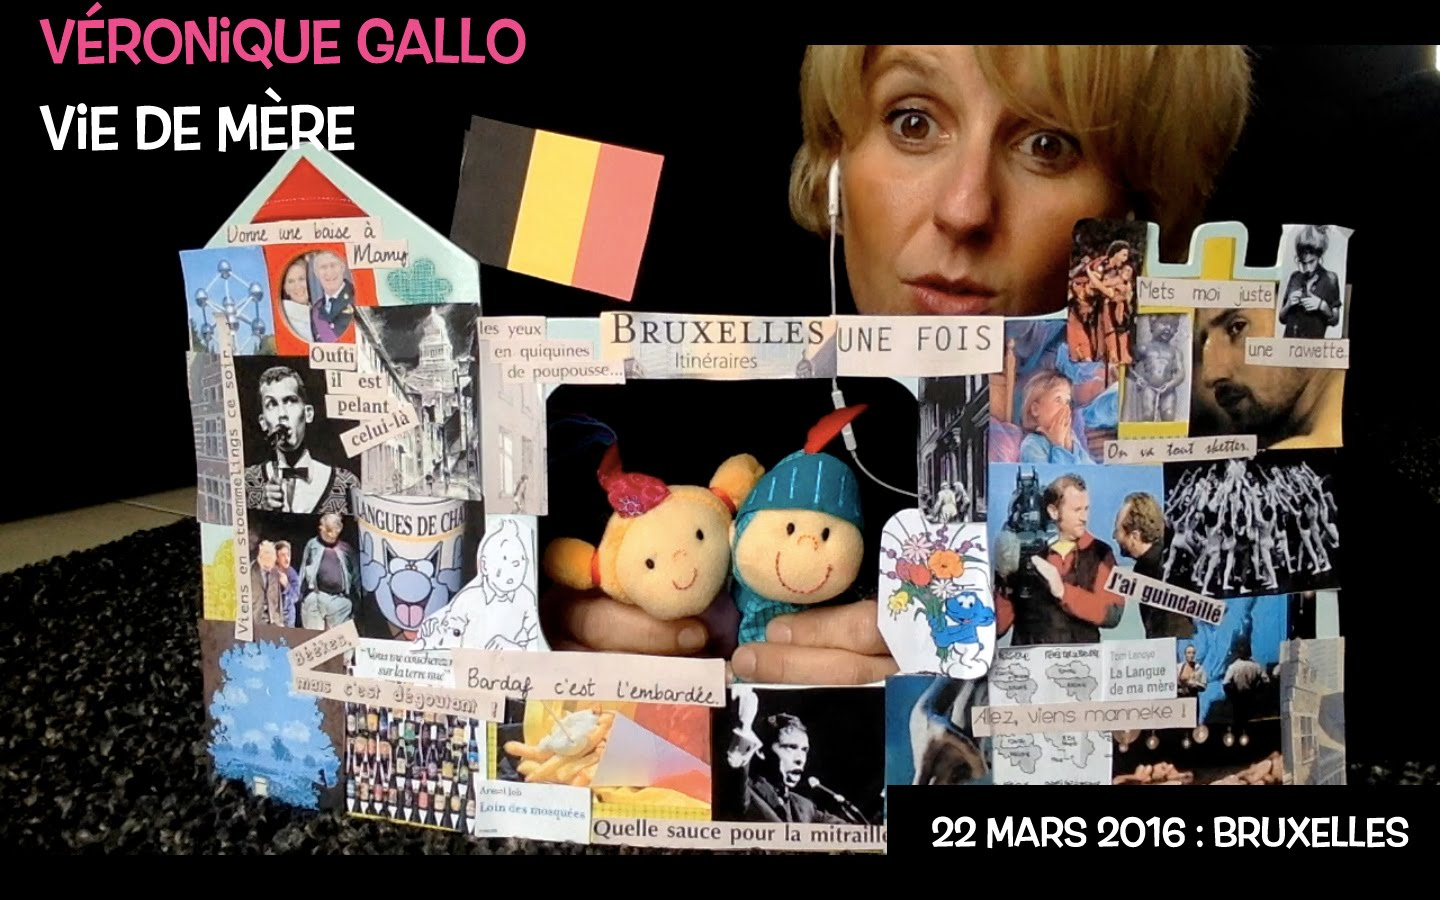 Véronique Gallo Bruxelles